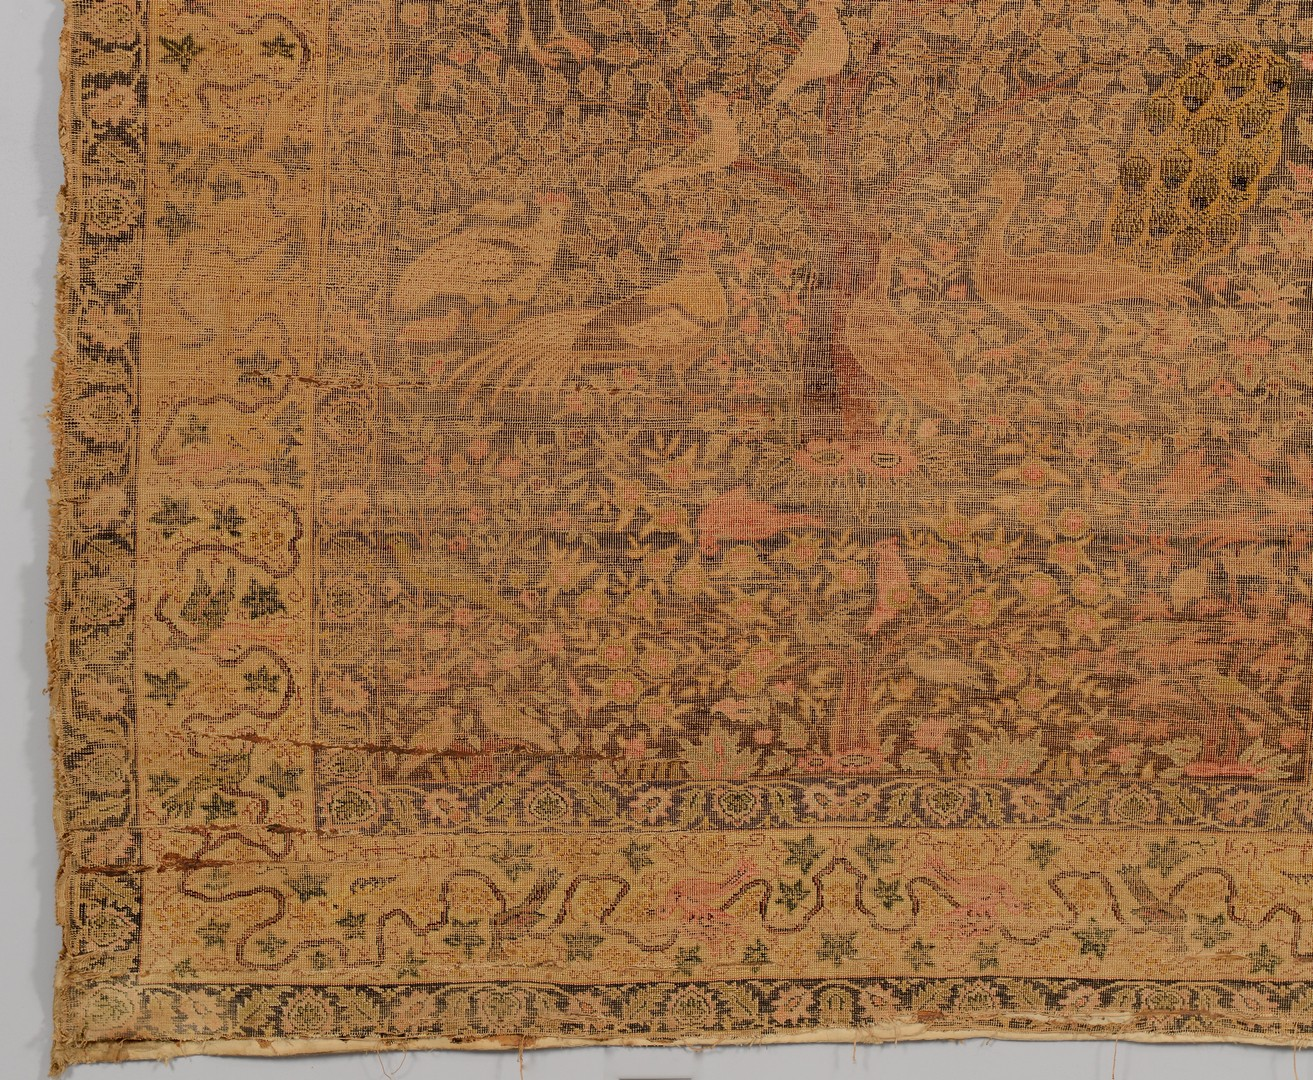 Lot 840: Persian Silk Qum Rug, display mounting